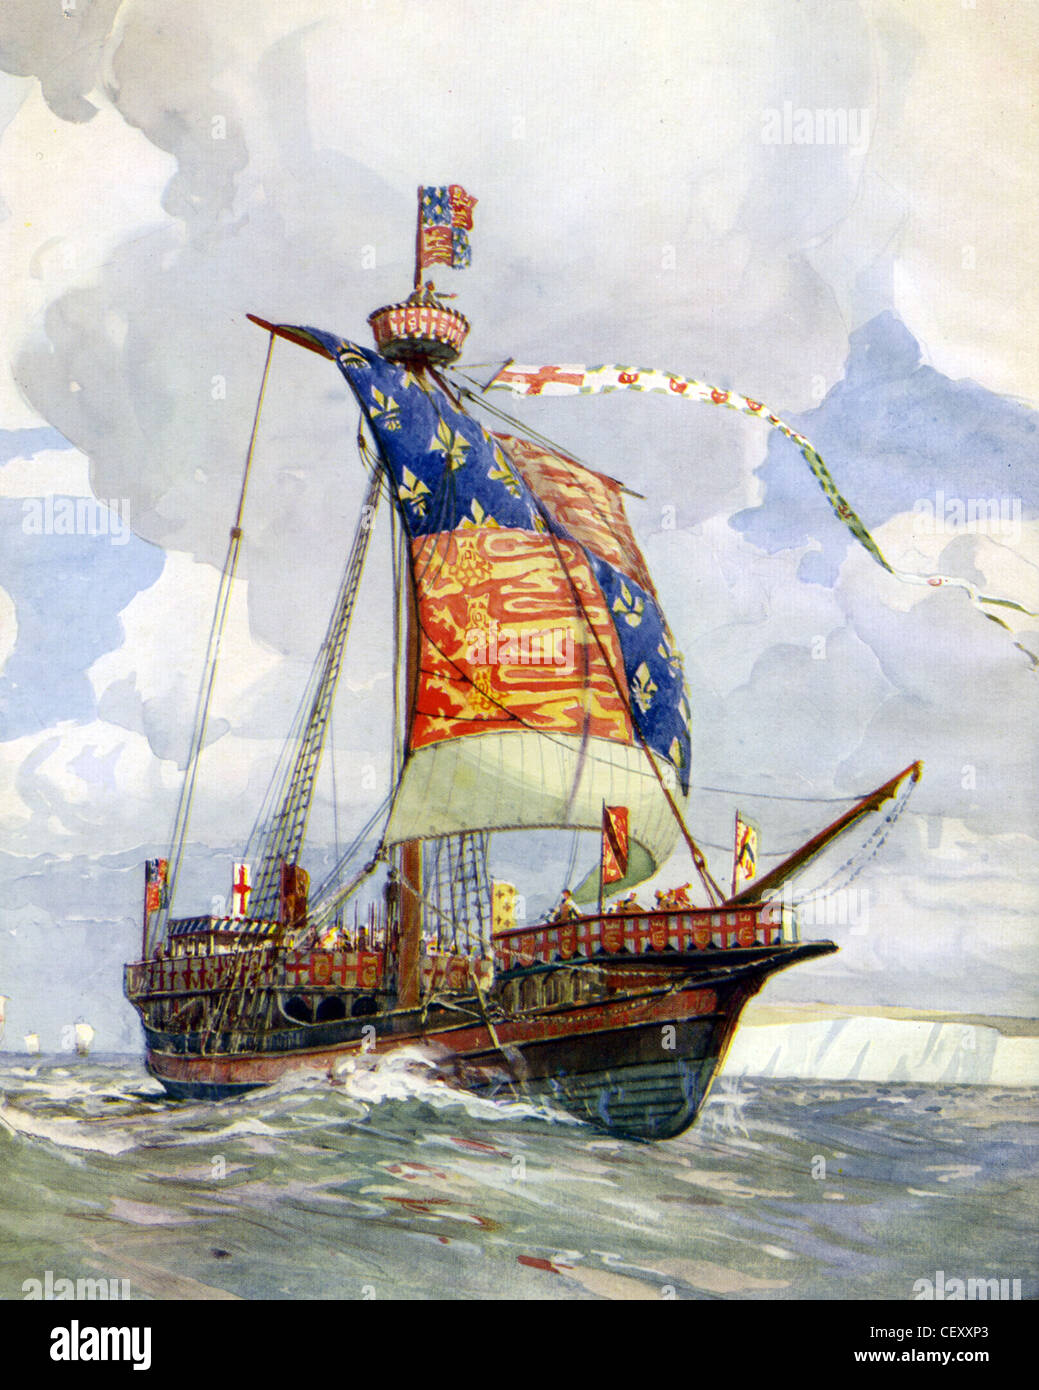 FOURTEENTH CENTURY  English warship painted by naval historian Gregory Robinson - Stock Image